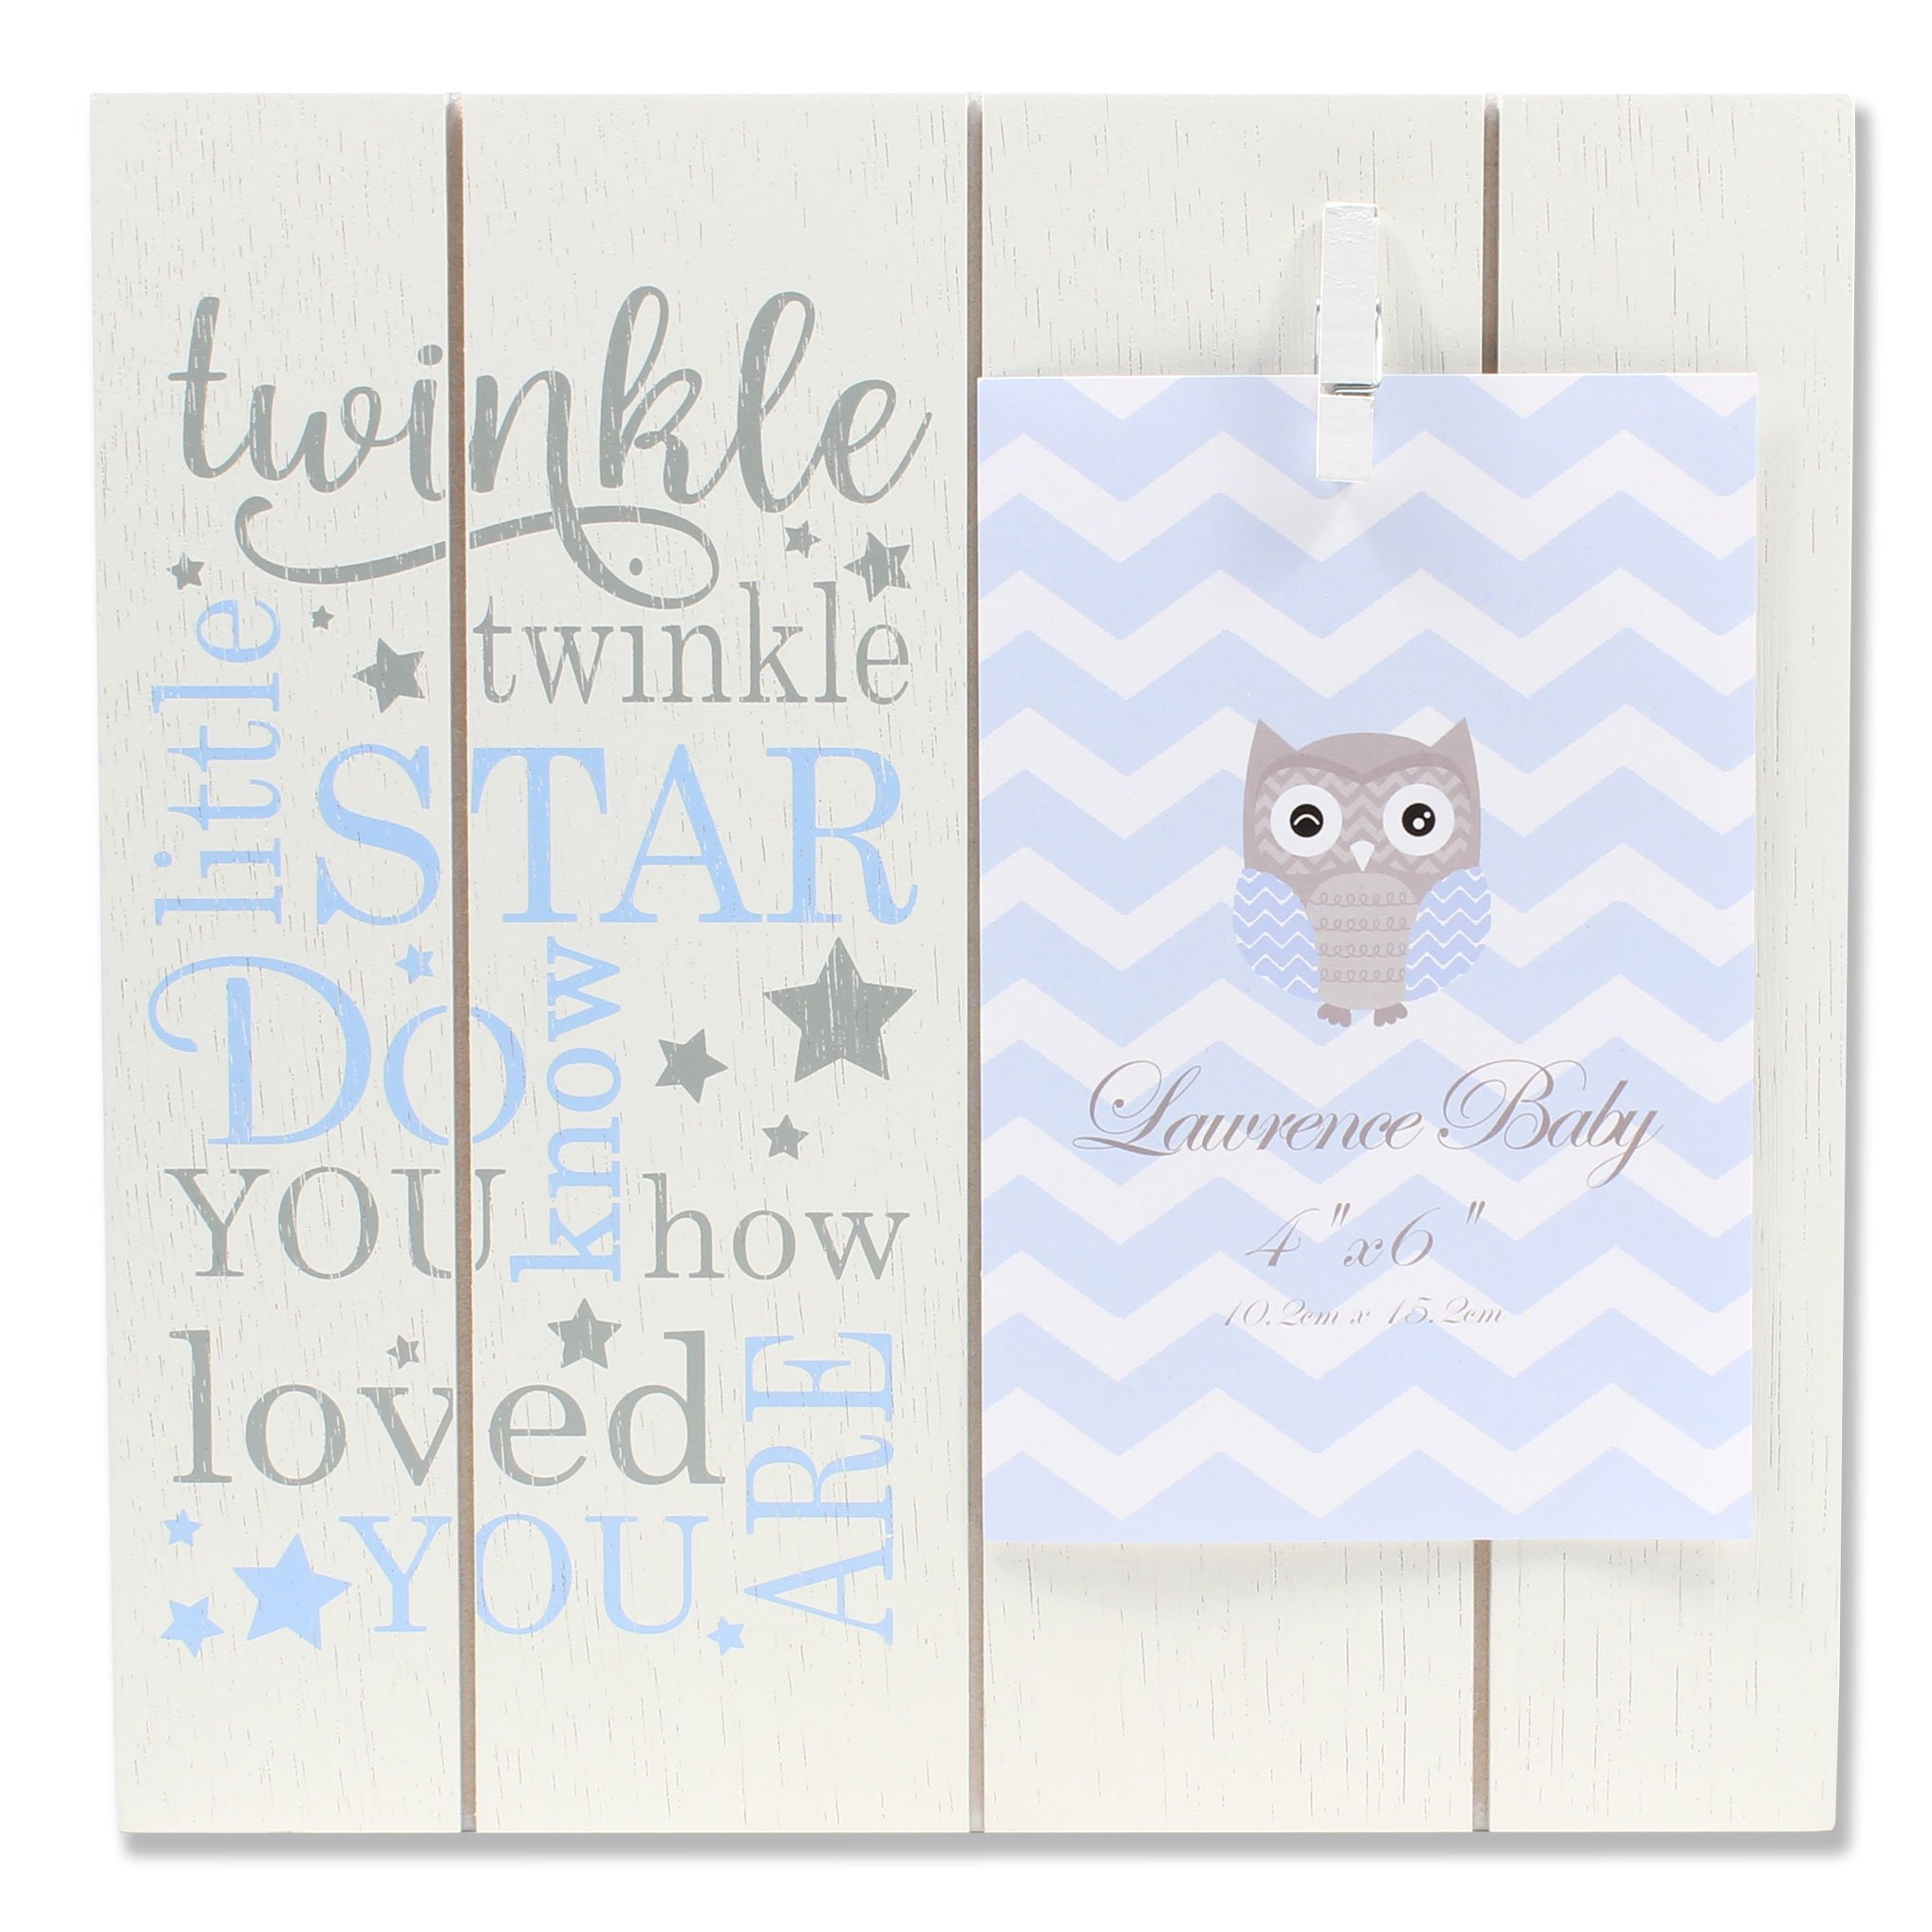 Lawrence Frames 4x6 Distressed White and Blue Wood Frame Twinkle Picture